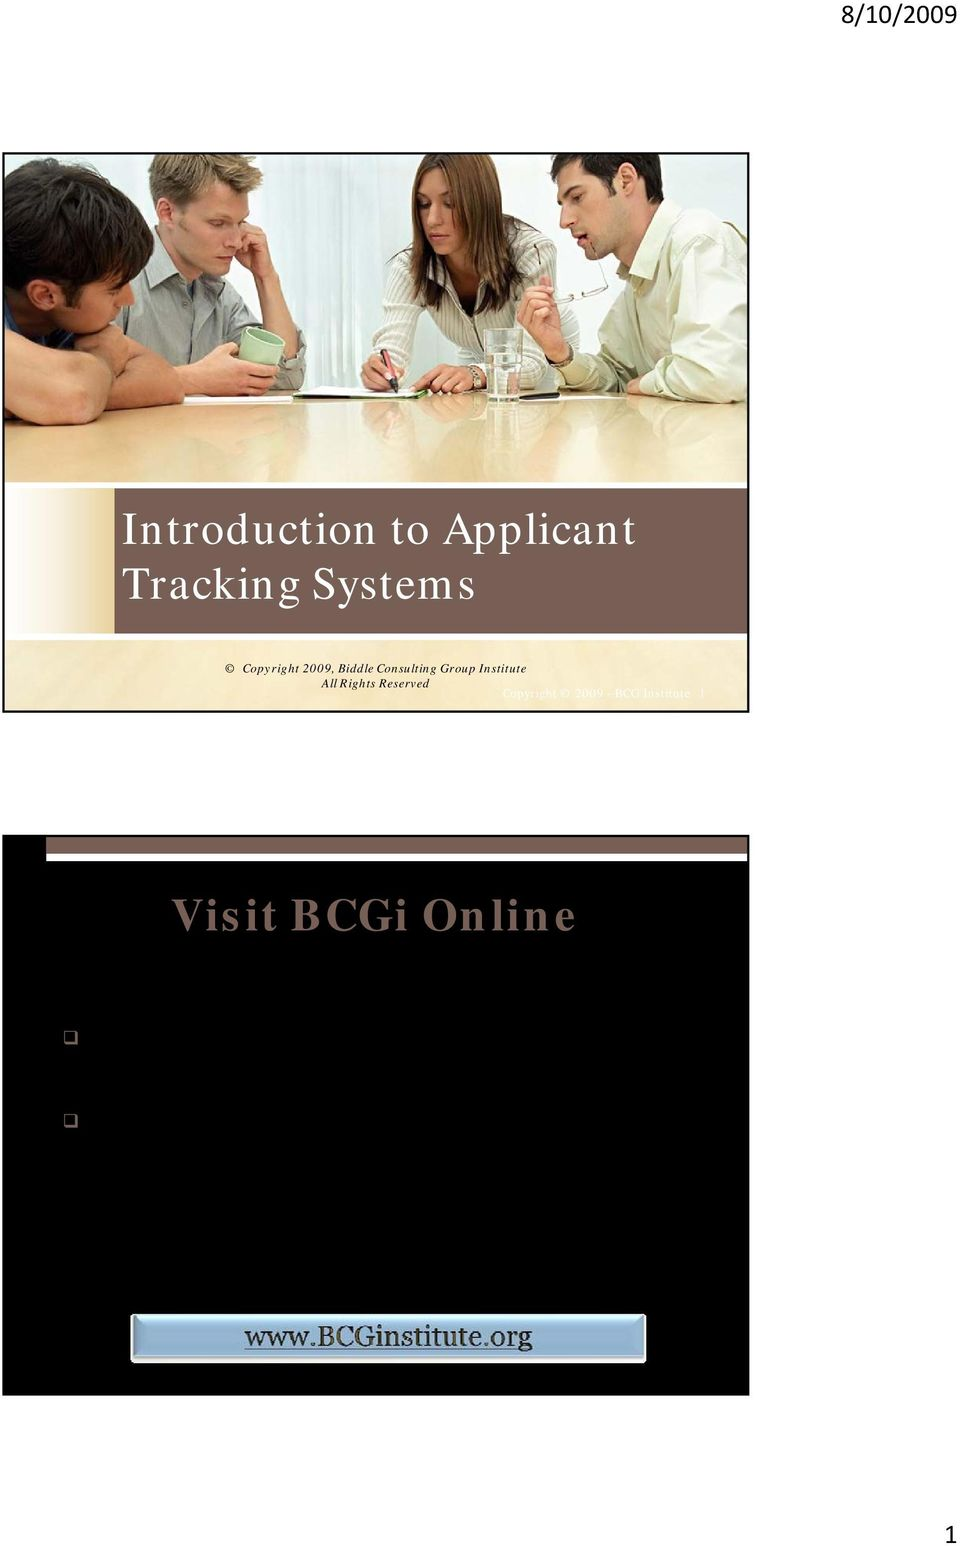 training opportunities through the BCGi website.